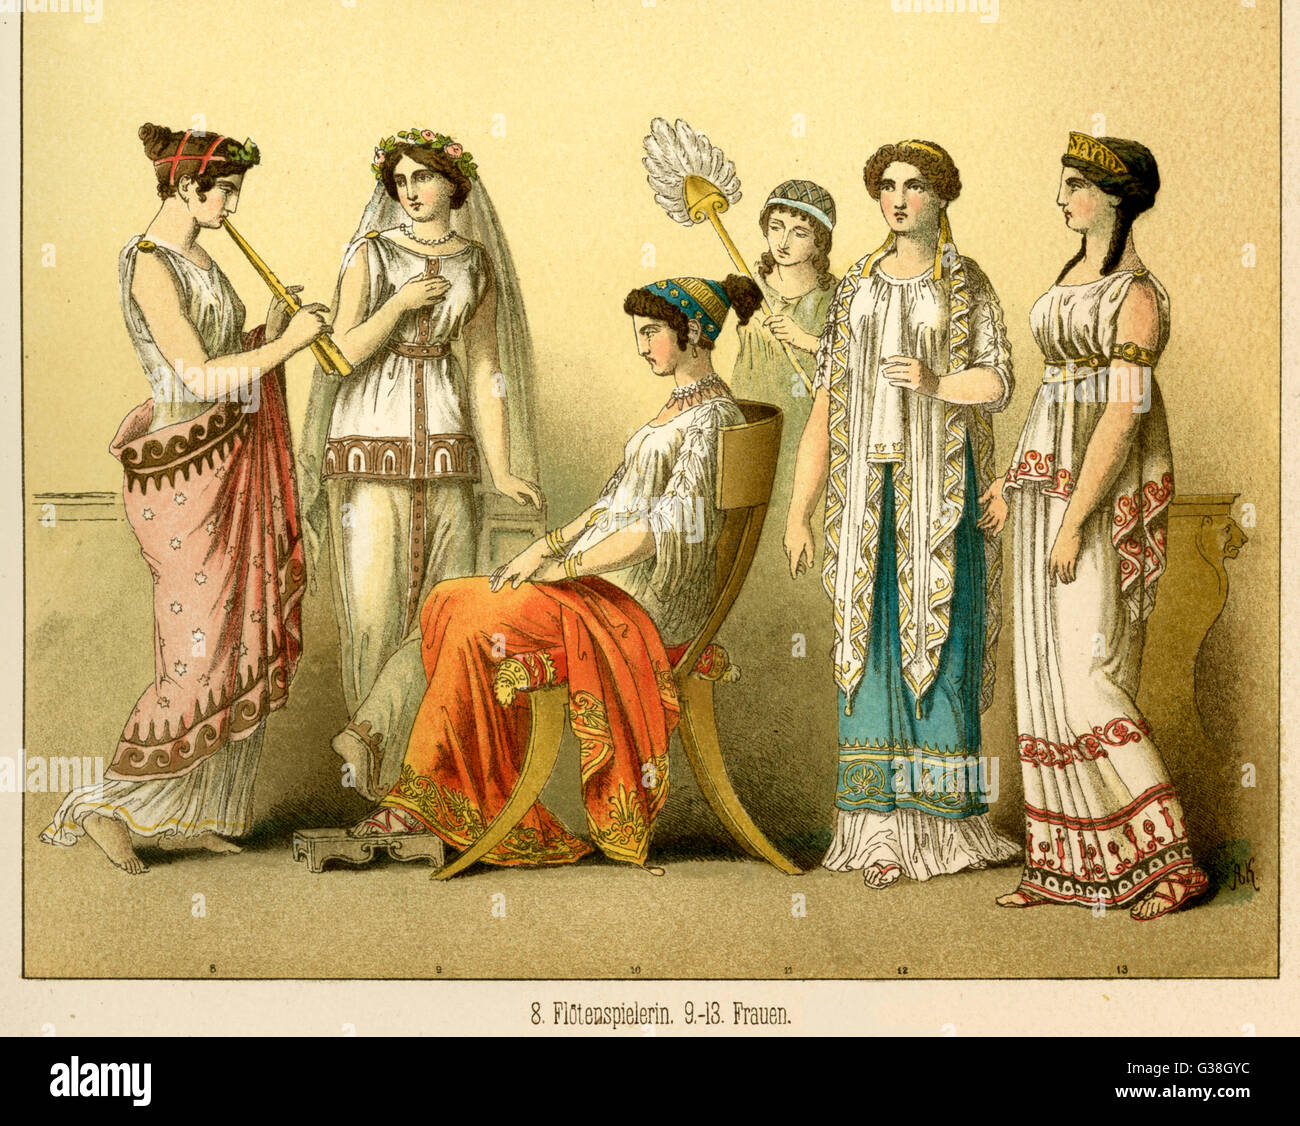 Various Ancient Greek  costumes; left to right - One female flute player and  the rest are women's everyday - Stock Image